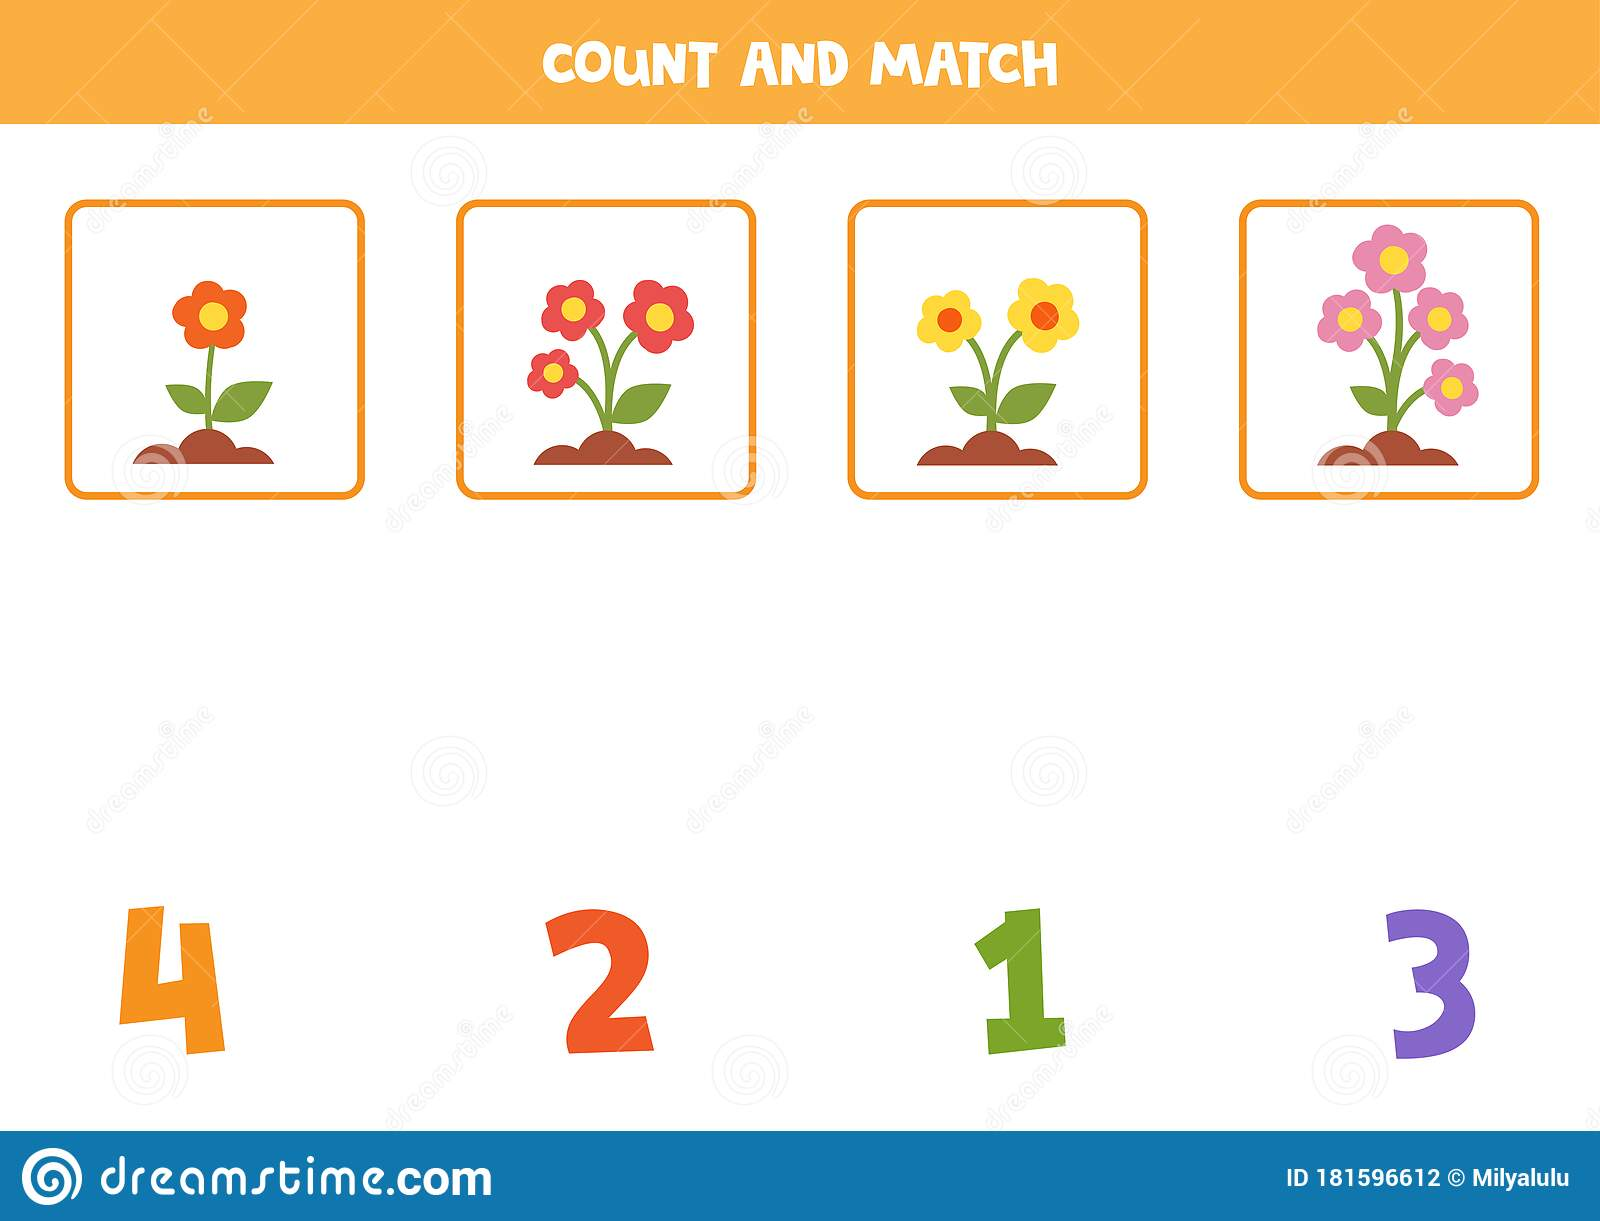 Math Worksheet For Kids Counting Game With Cute Cartoon